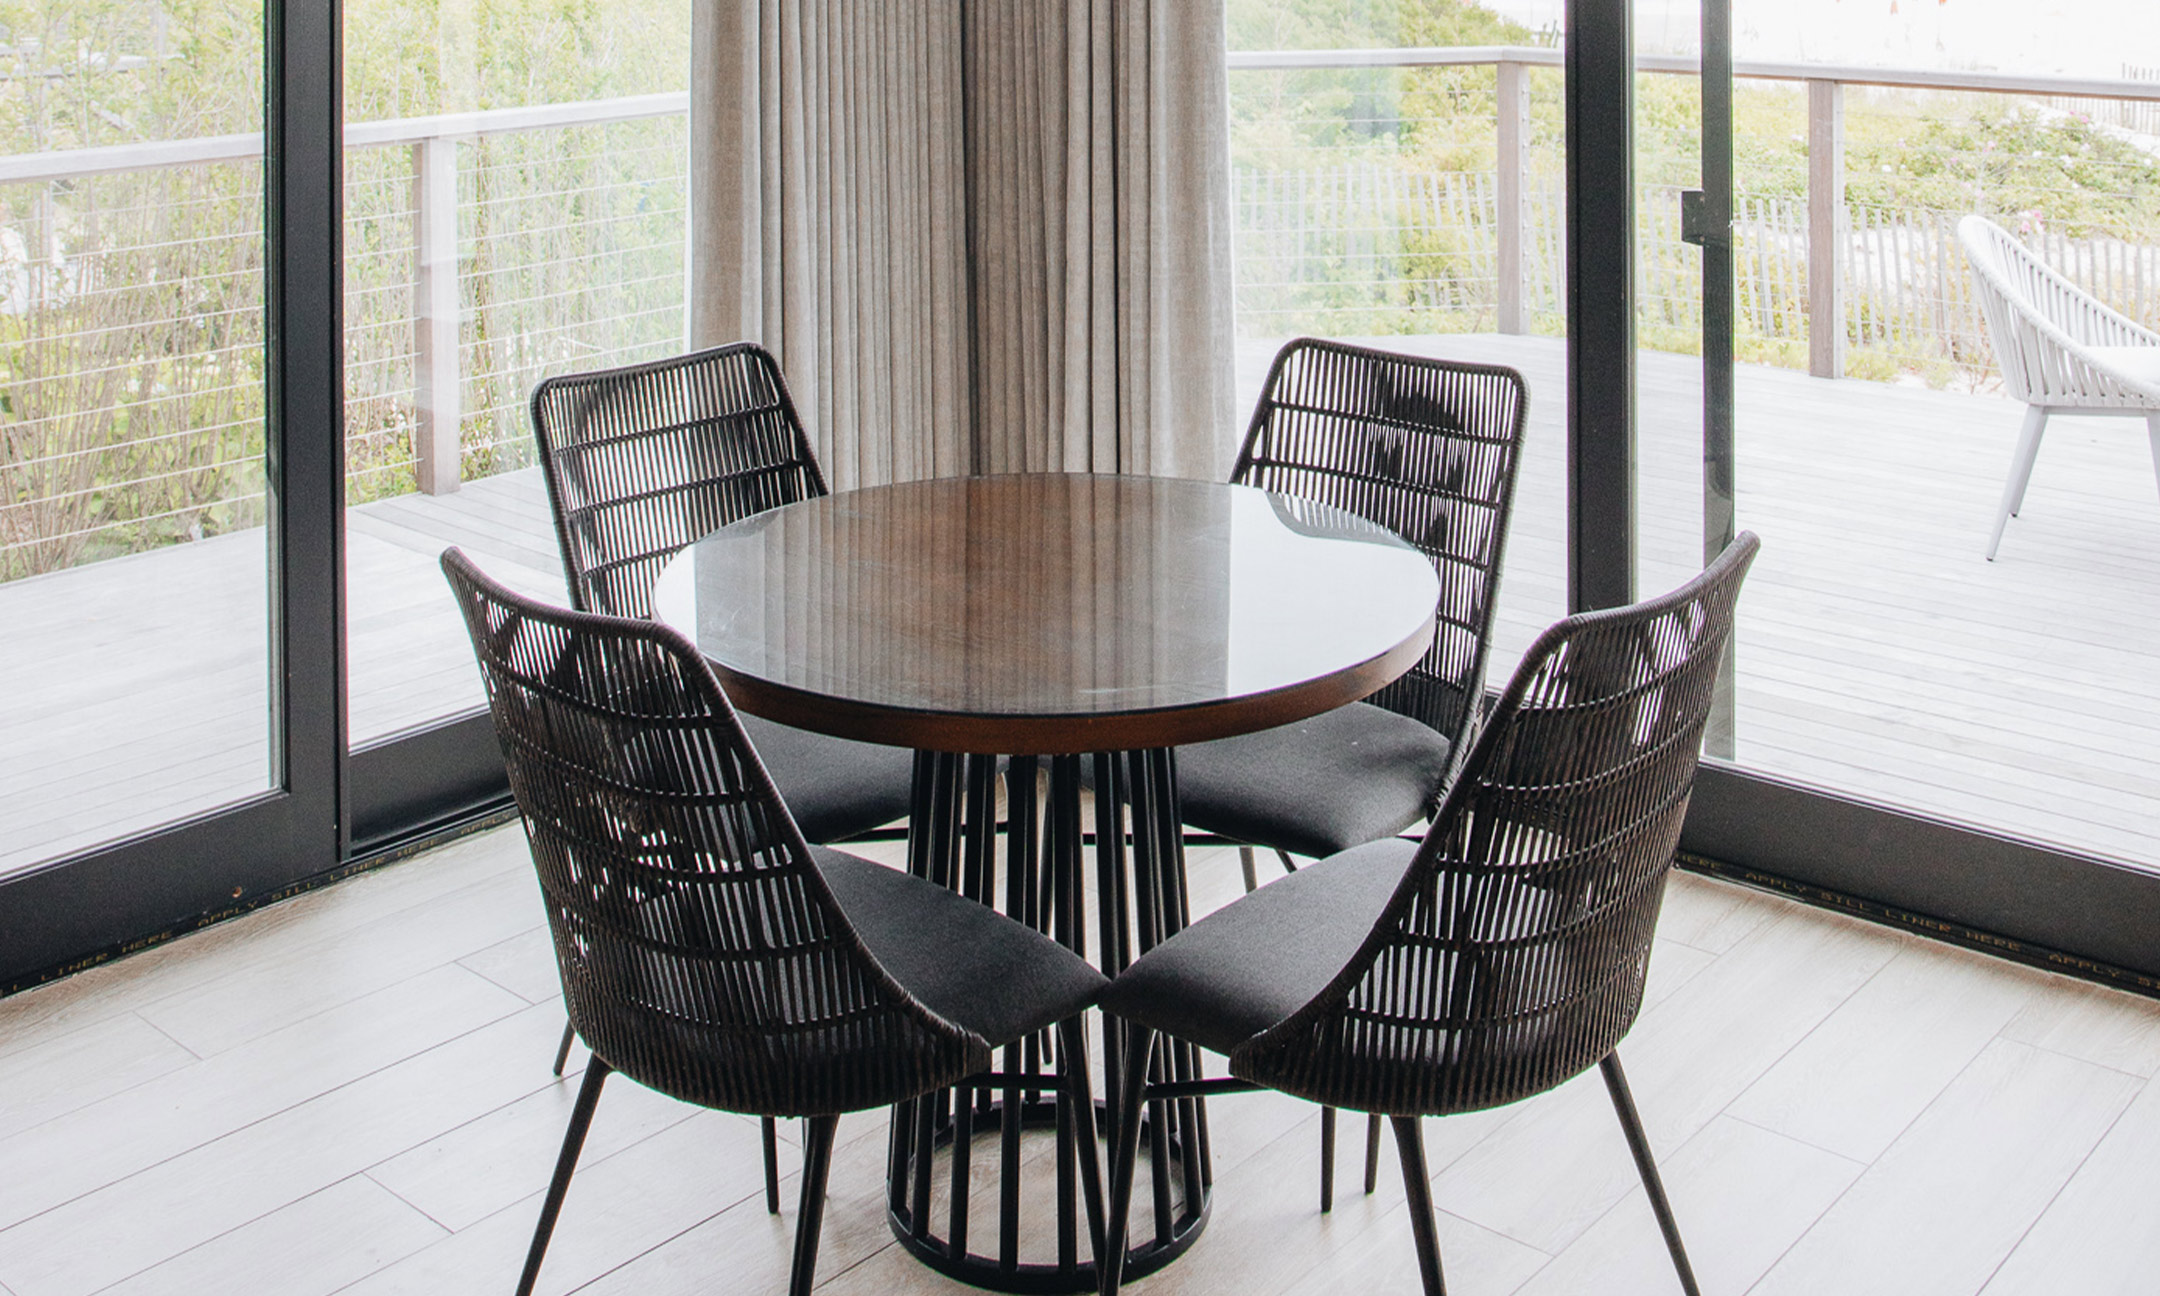 4 chairs around a dining table